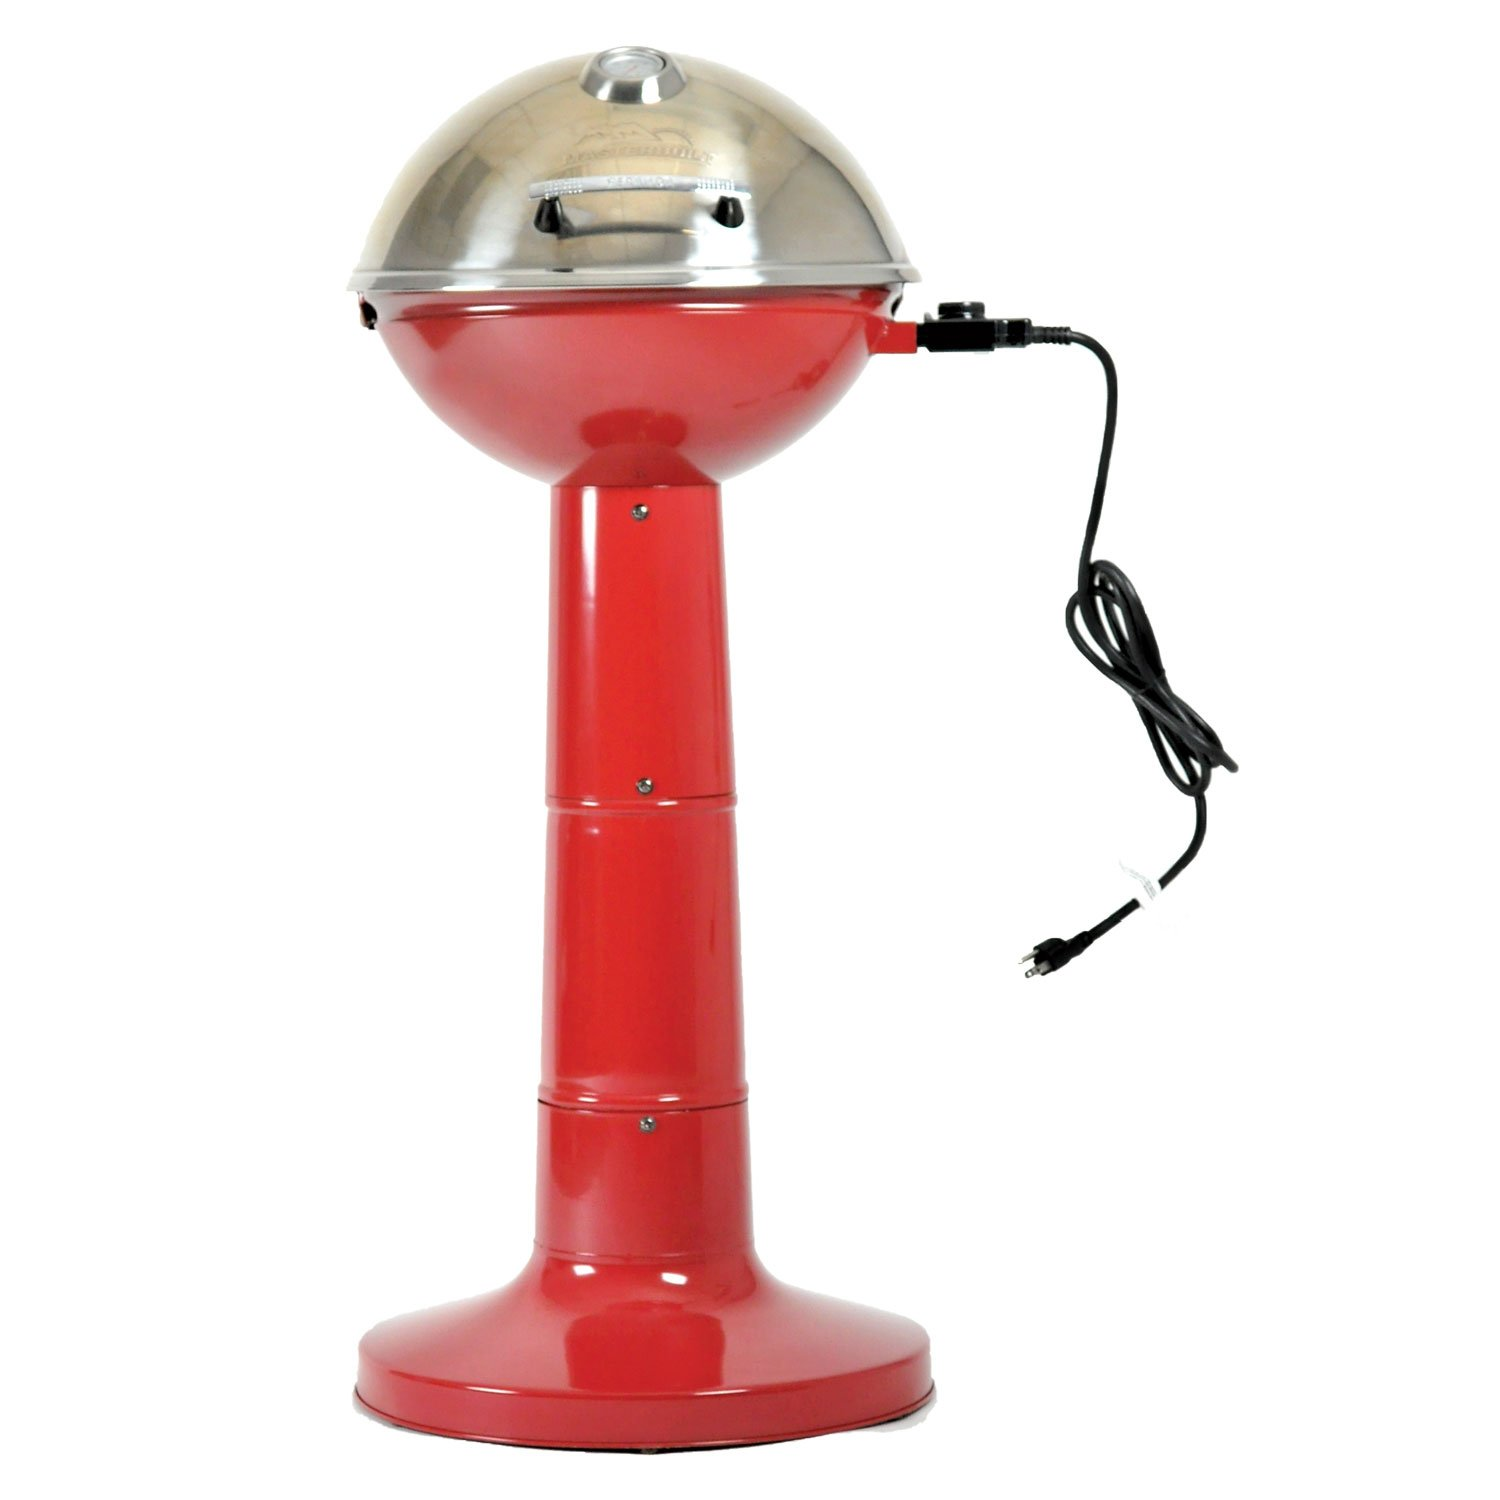 Masterbuilt Verdana Outdoor Patio 18 Inch 1650W Electric Pedestal Grill, Red by Regalo (Image #2)